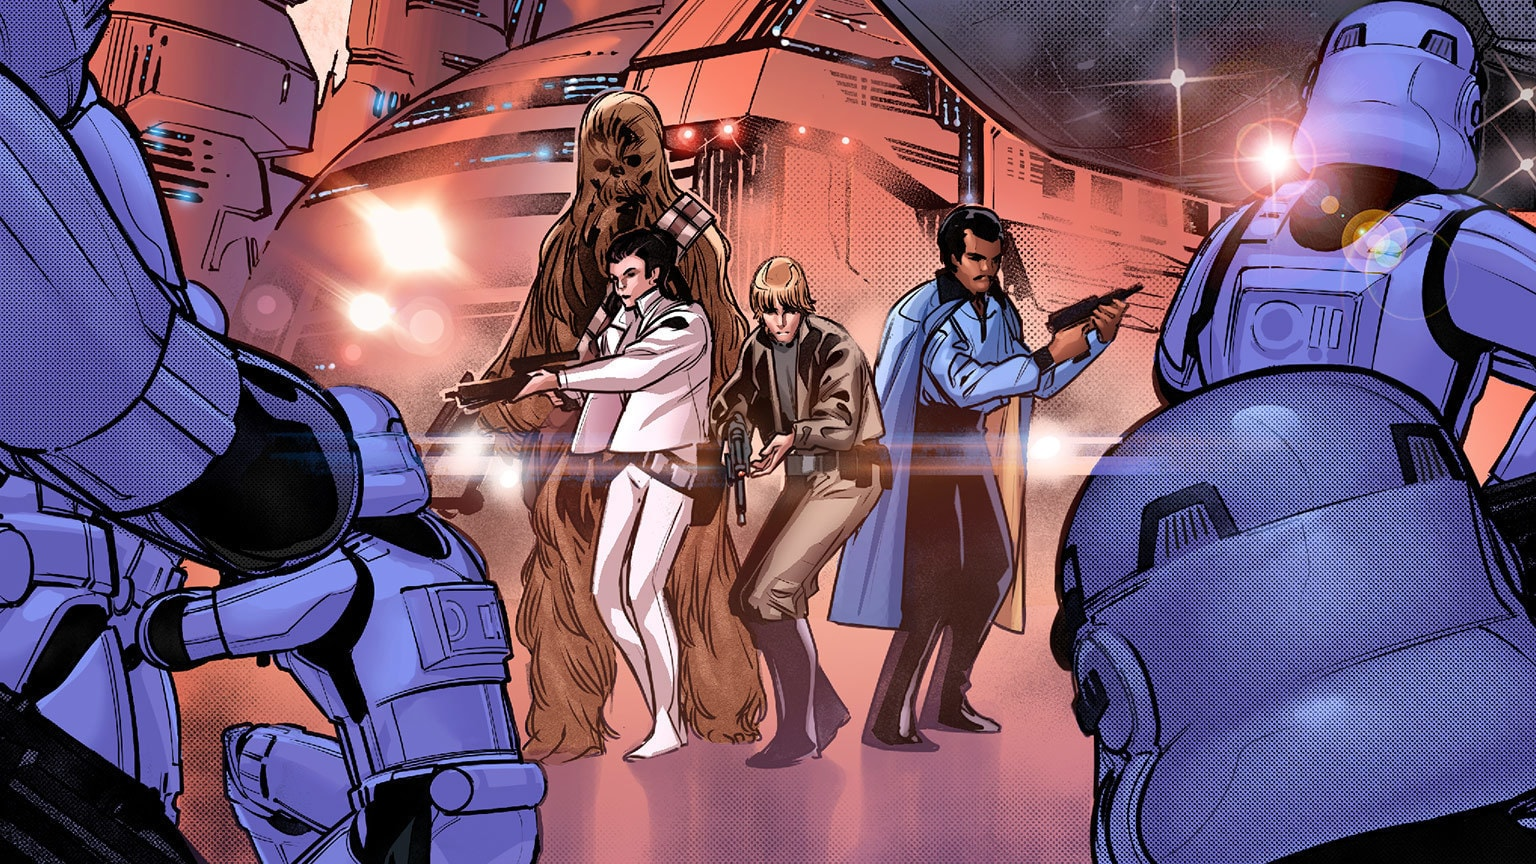 Luke, Leia, and Lando Return to Cloud City in Star Wars #3 – Exclusive